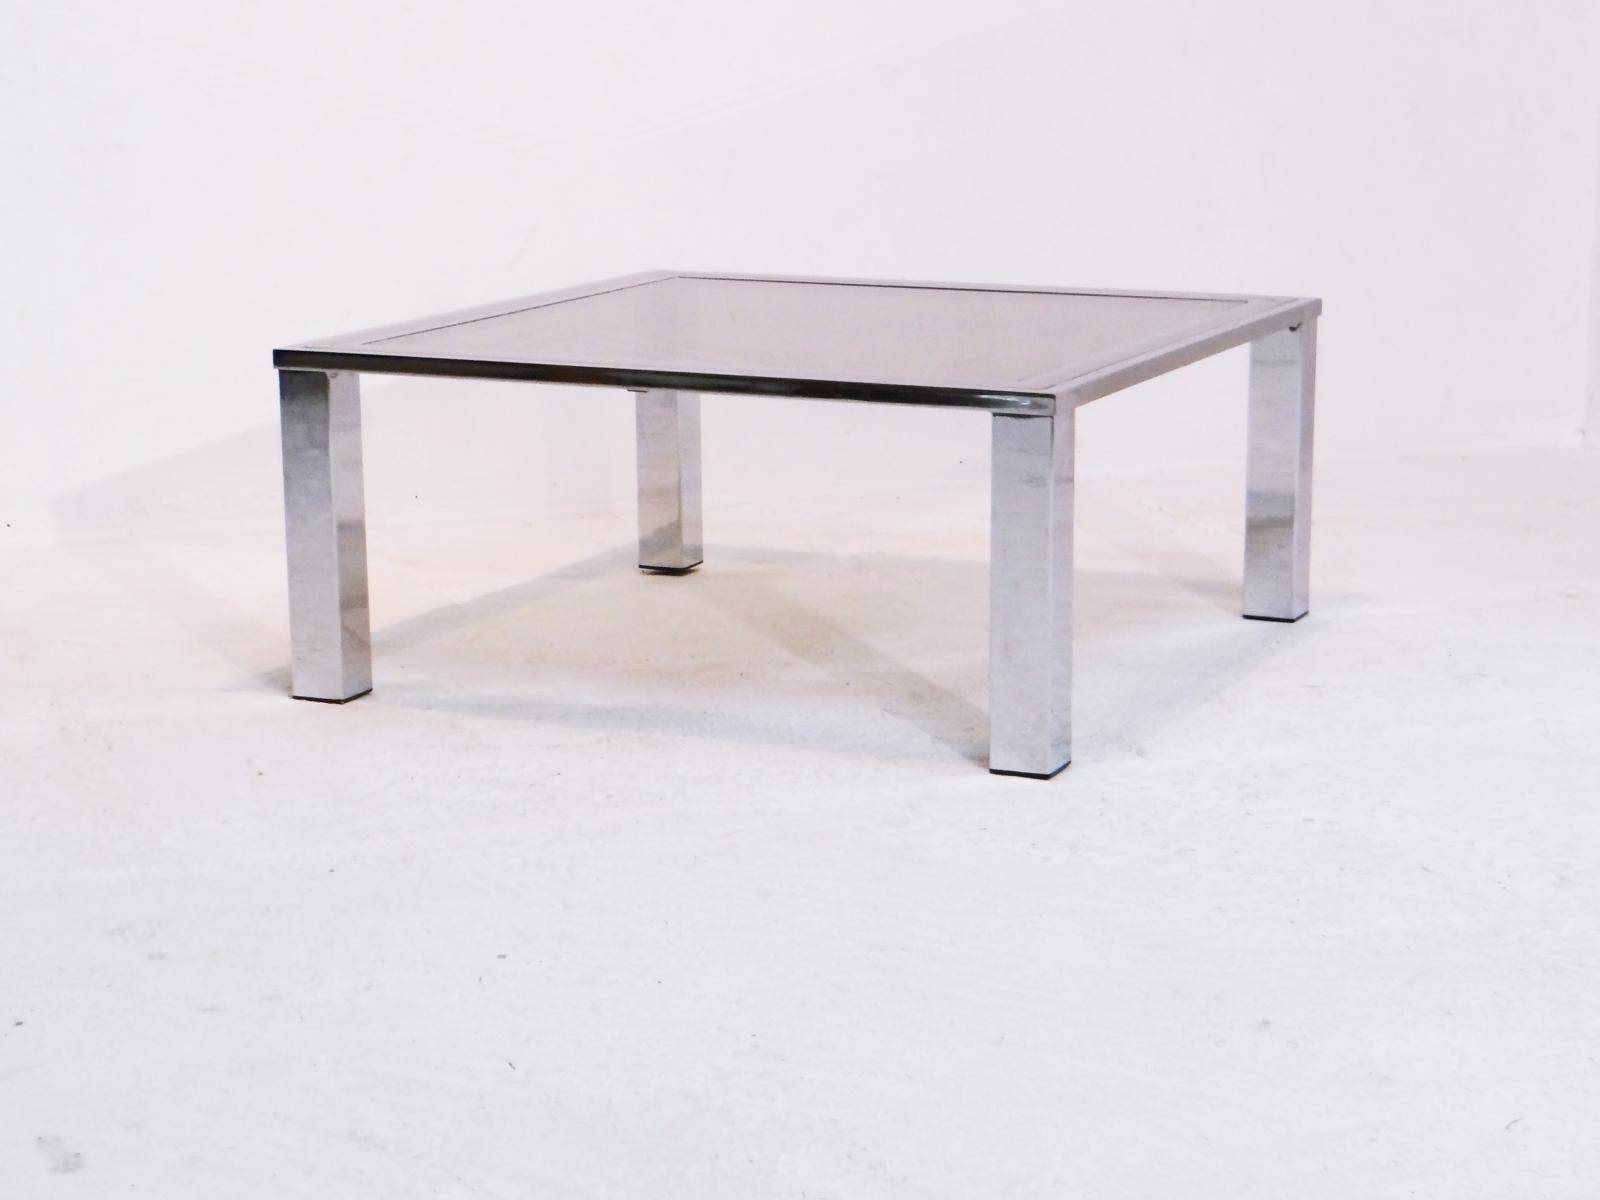 Vintage Coffee Table With Smoked Glass Top For Sale At Pamono with White Retro Coffee Tables (Image 27 of 30)